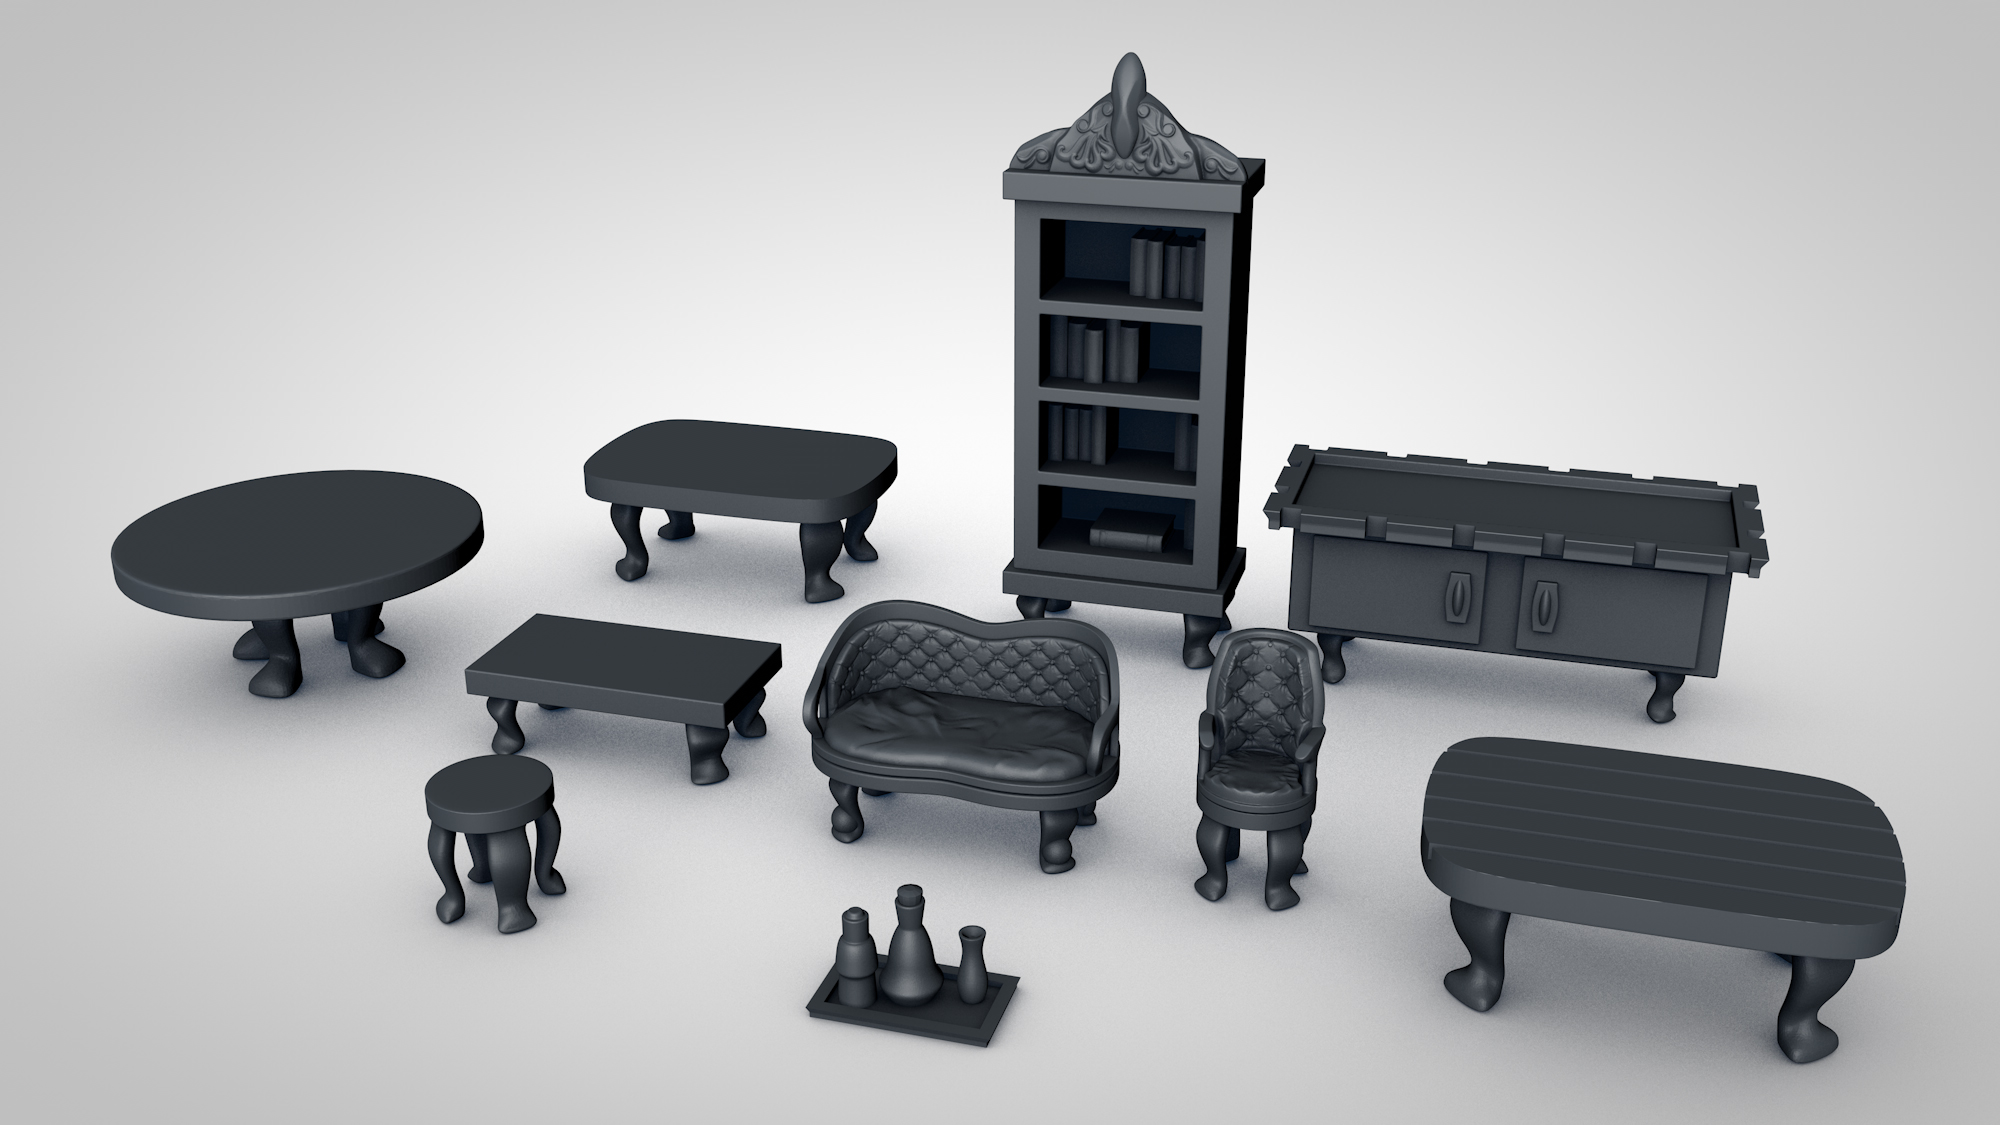 Fancy Furniture for D&D or Tabletop Gaming